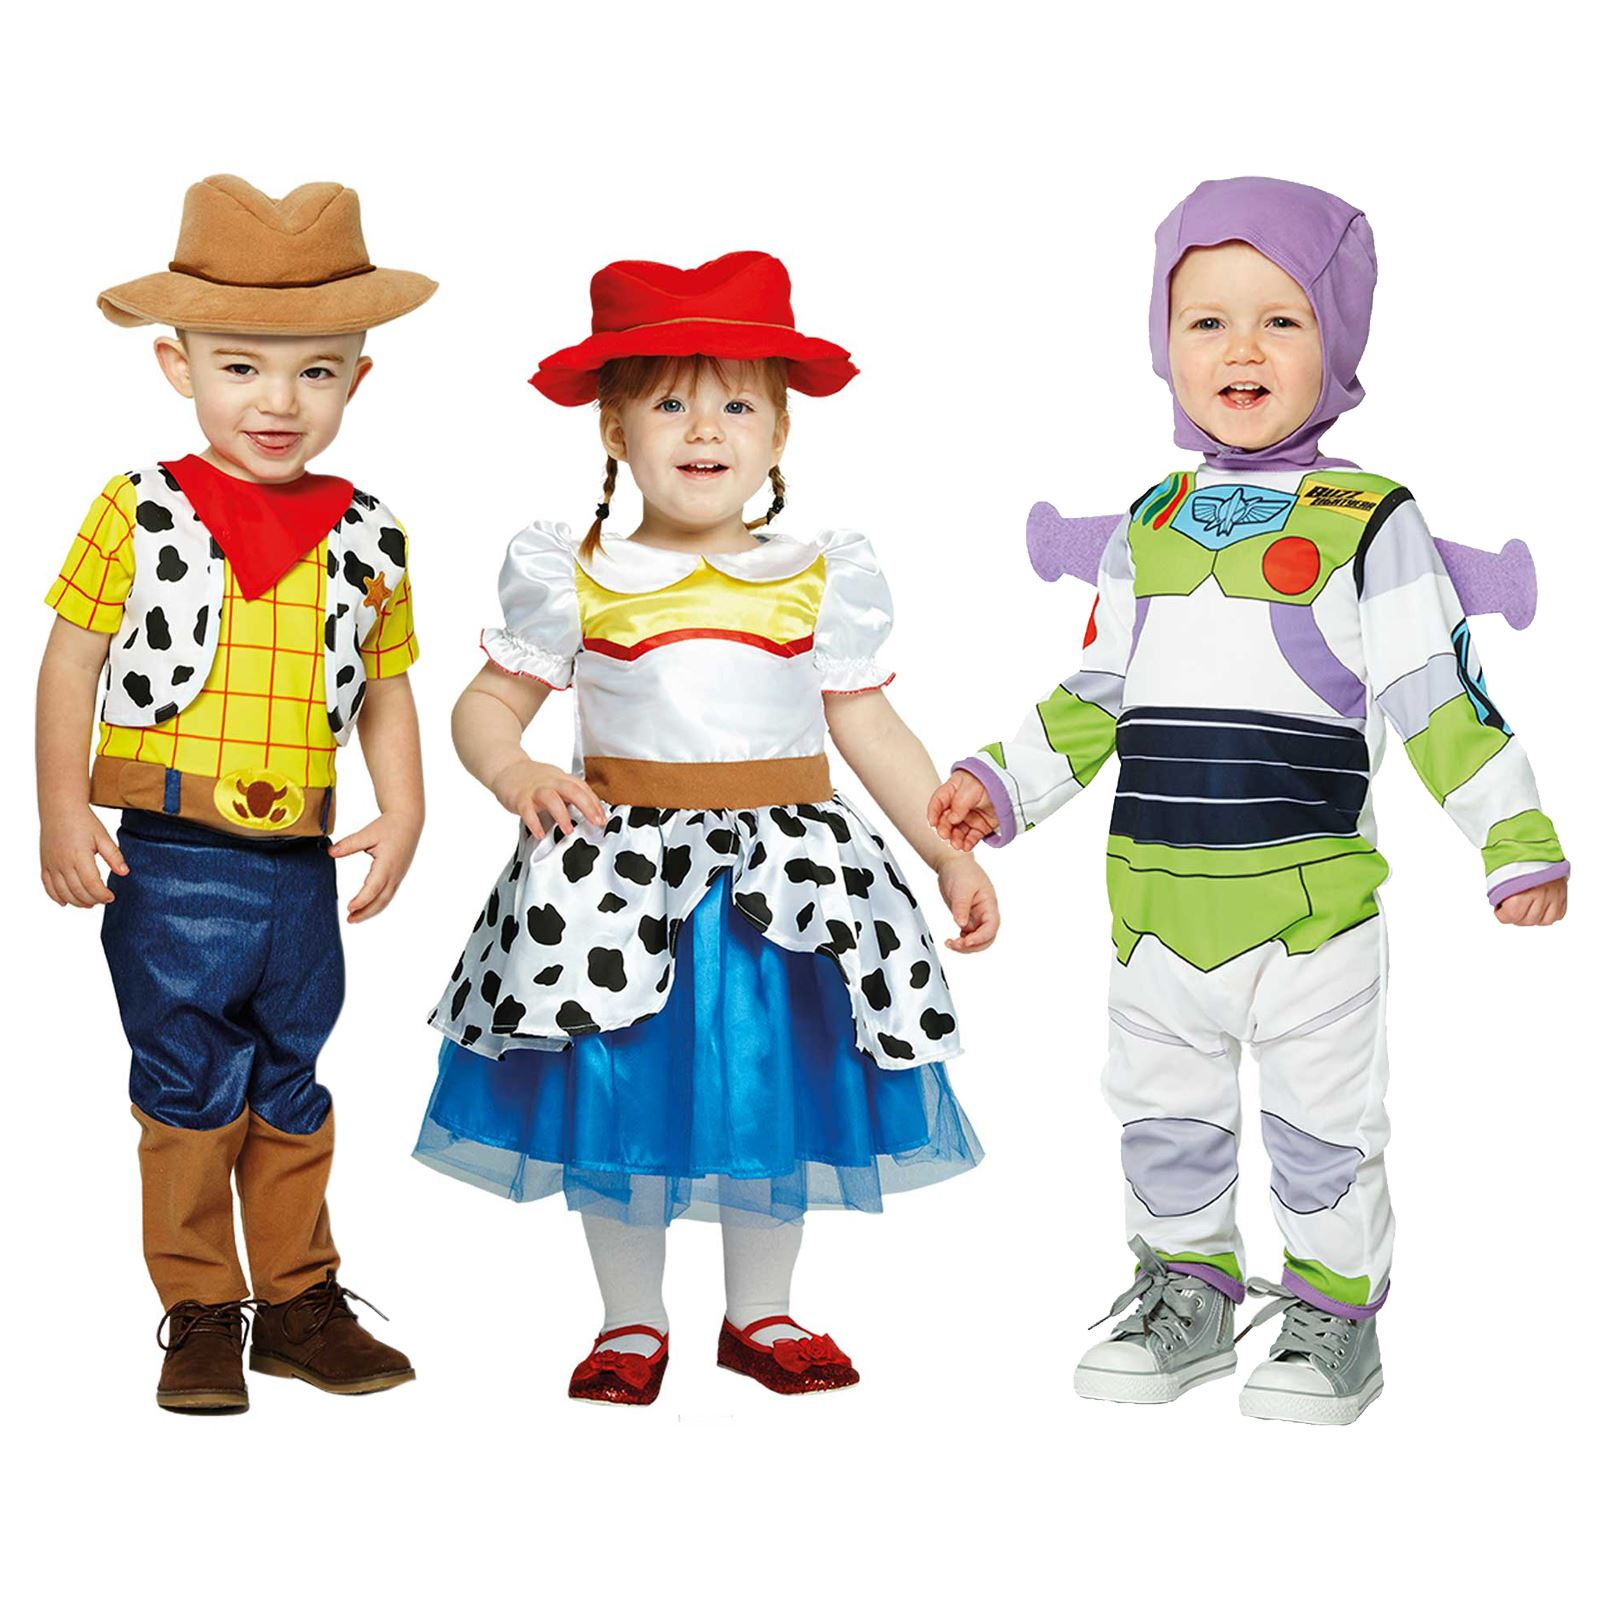 2c00a707a03 Details about Disney Toy Story 4 Girls Boy Kids Baby Babies Fancy Dress  Costume Christmas Gift